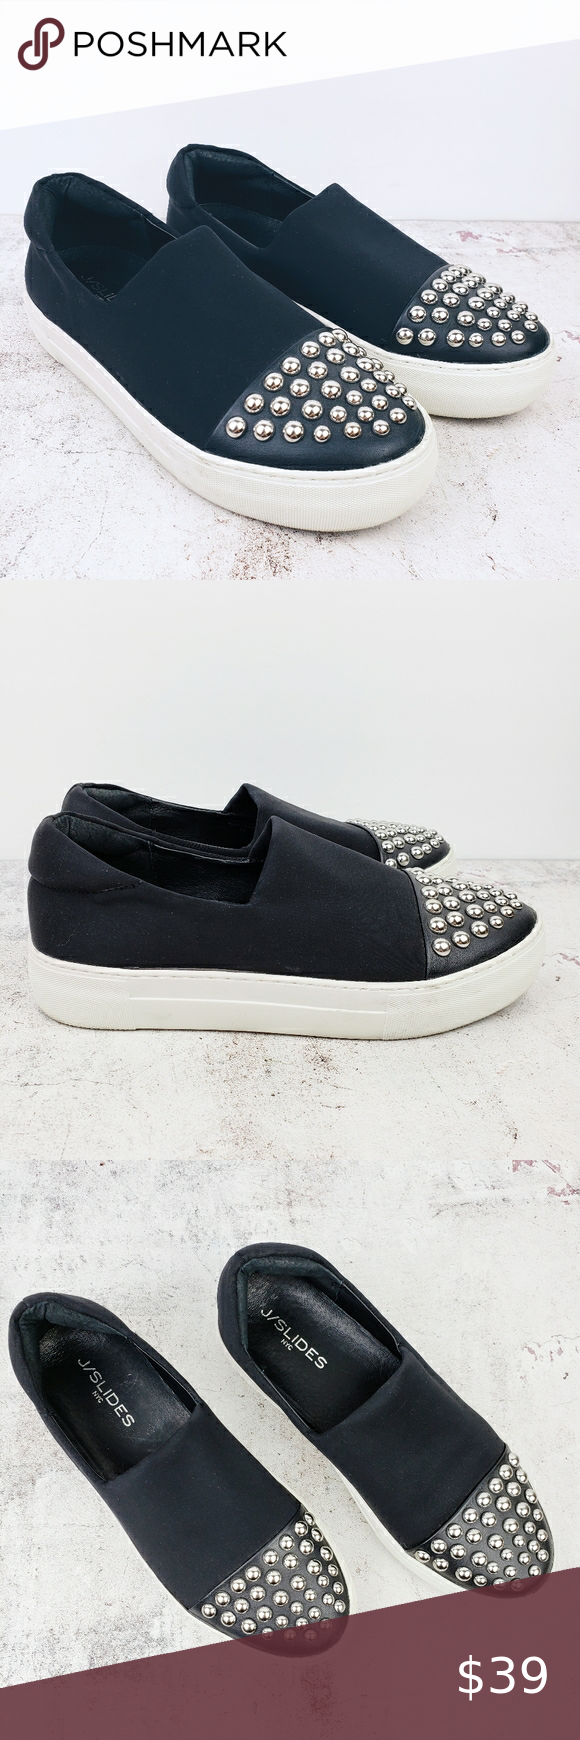 Anthro J Slides Nyc Loafers Slip On Sneakers Studs In 2020 Slip On Sneakers Sneakers Anthropologie Shoes